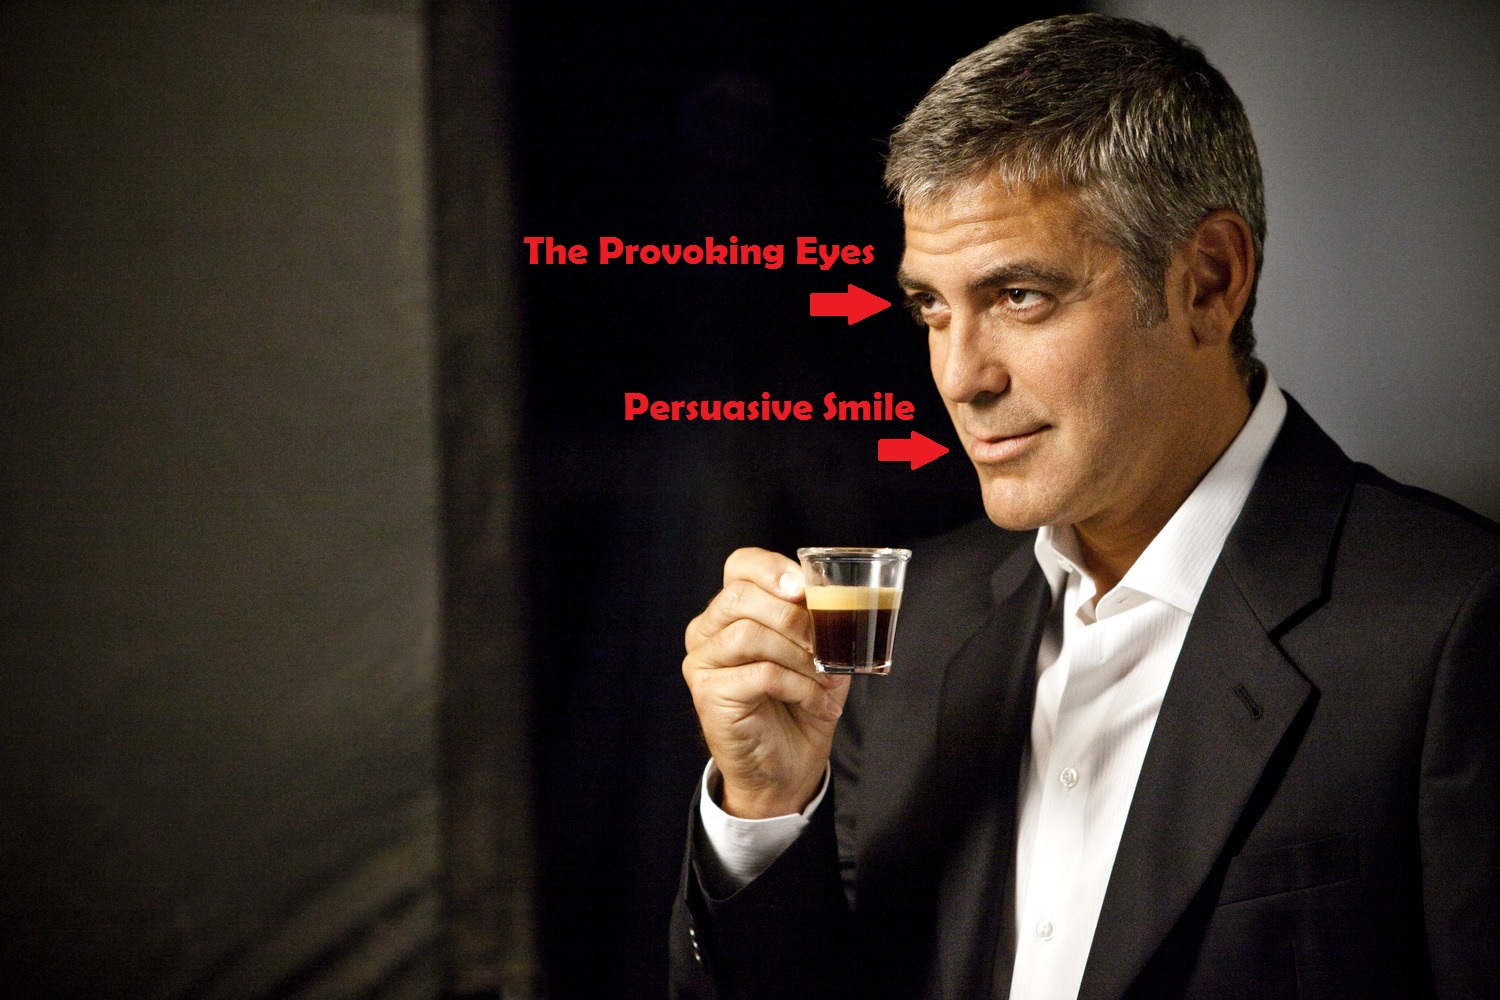 George clooney's face on a Website for promoting a Cofee brand.